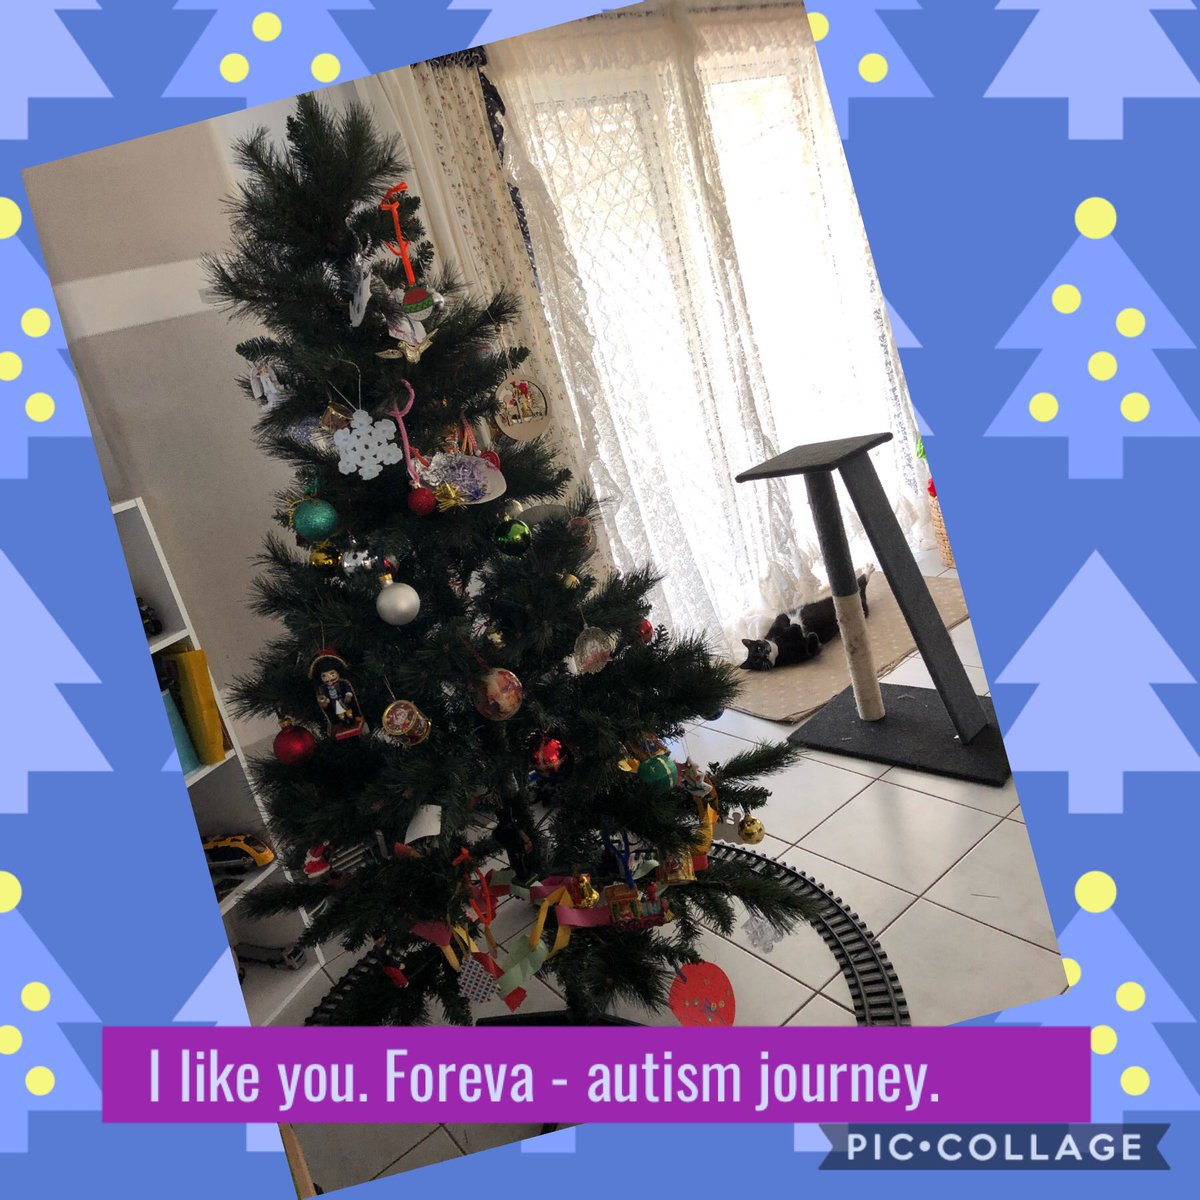 #merrychristmas everyone. Hope it's an #amazing day spent with your loved ones. #christmas. #happy. #love. #support. #family. #smiles. #ilikeyouforevaautismjourney #christmasTree #tree. #decorations. #tinsel.